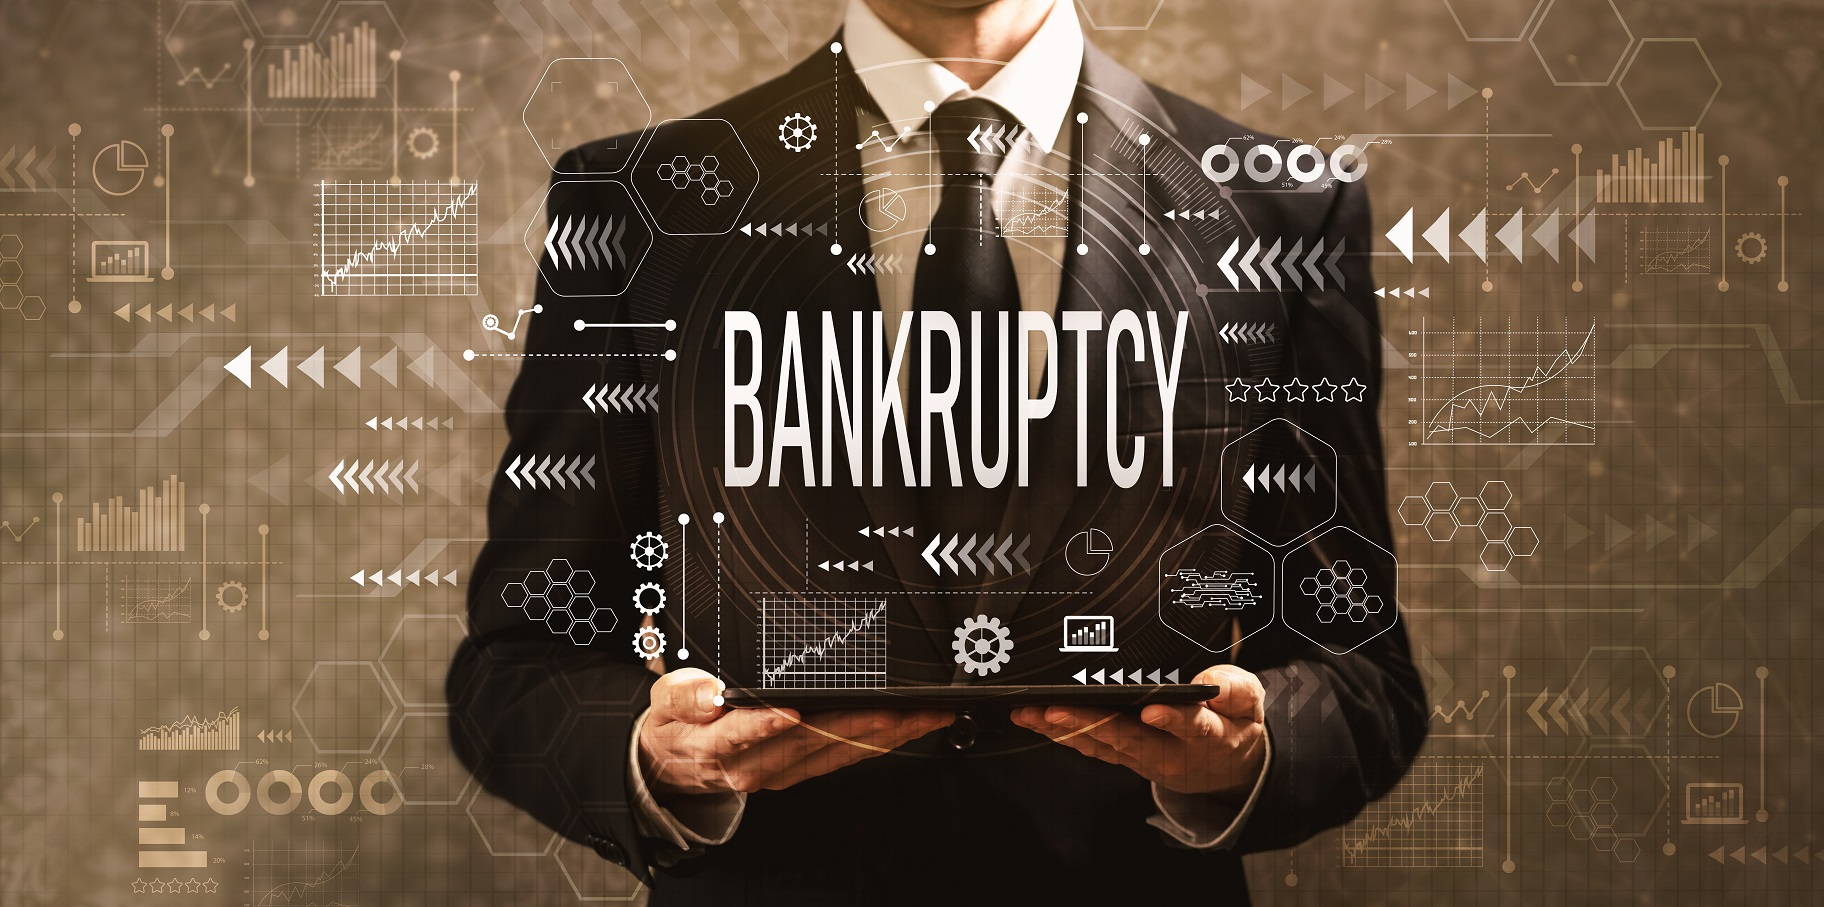 bankruptcy man in suit holding tablet